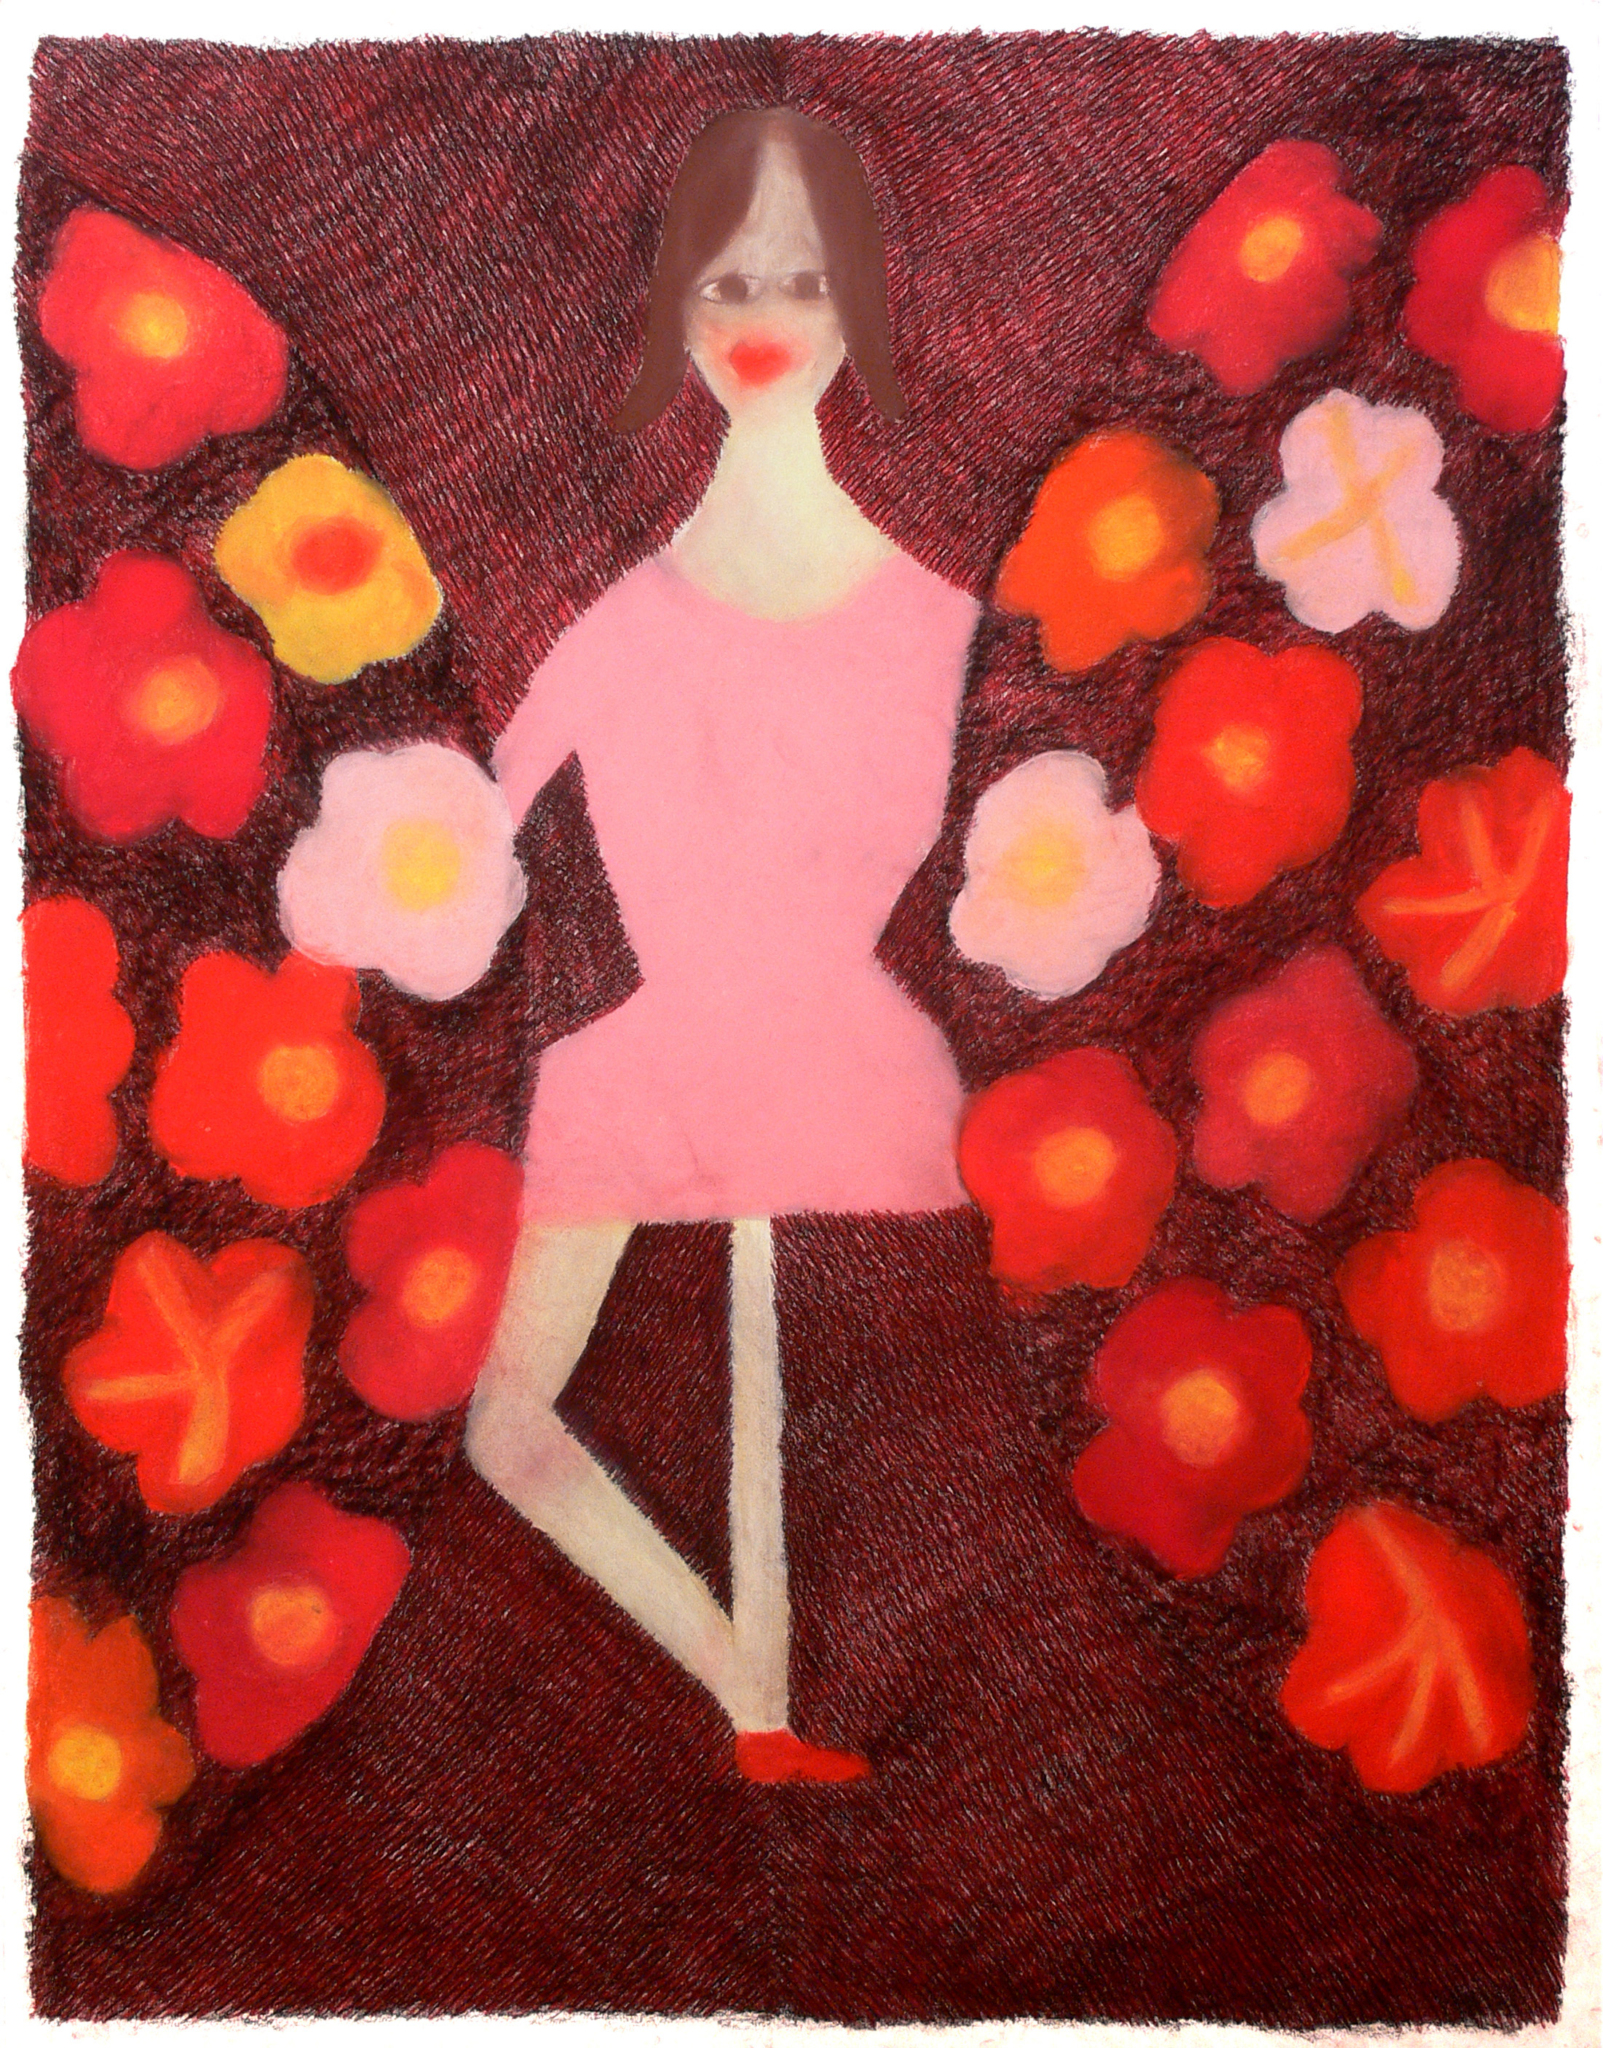 A dancer and flowers, 2005